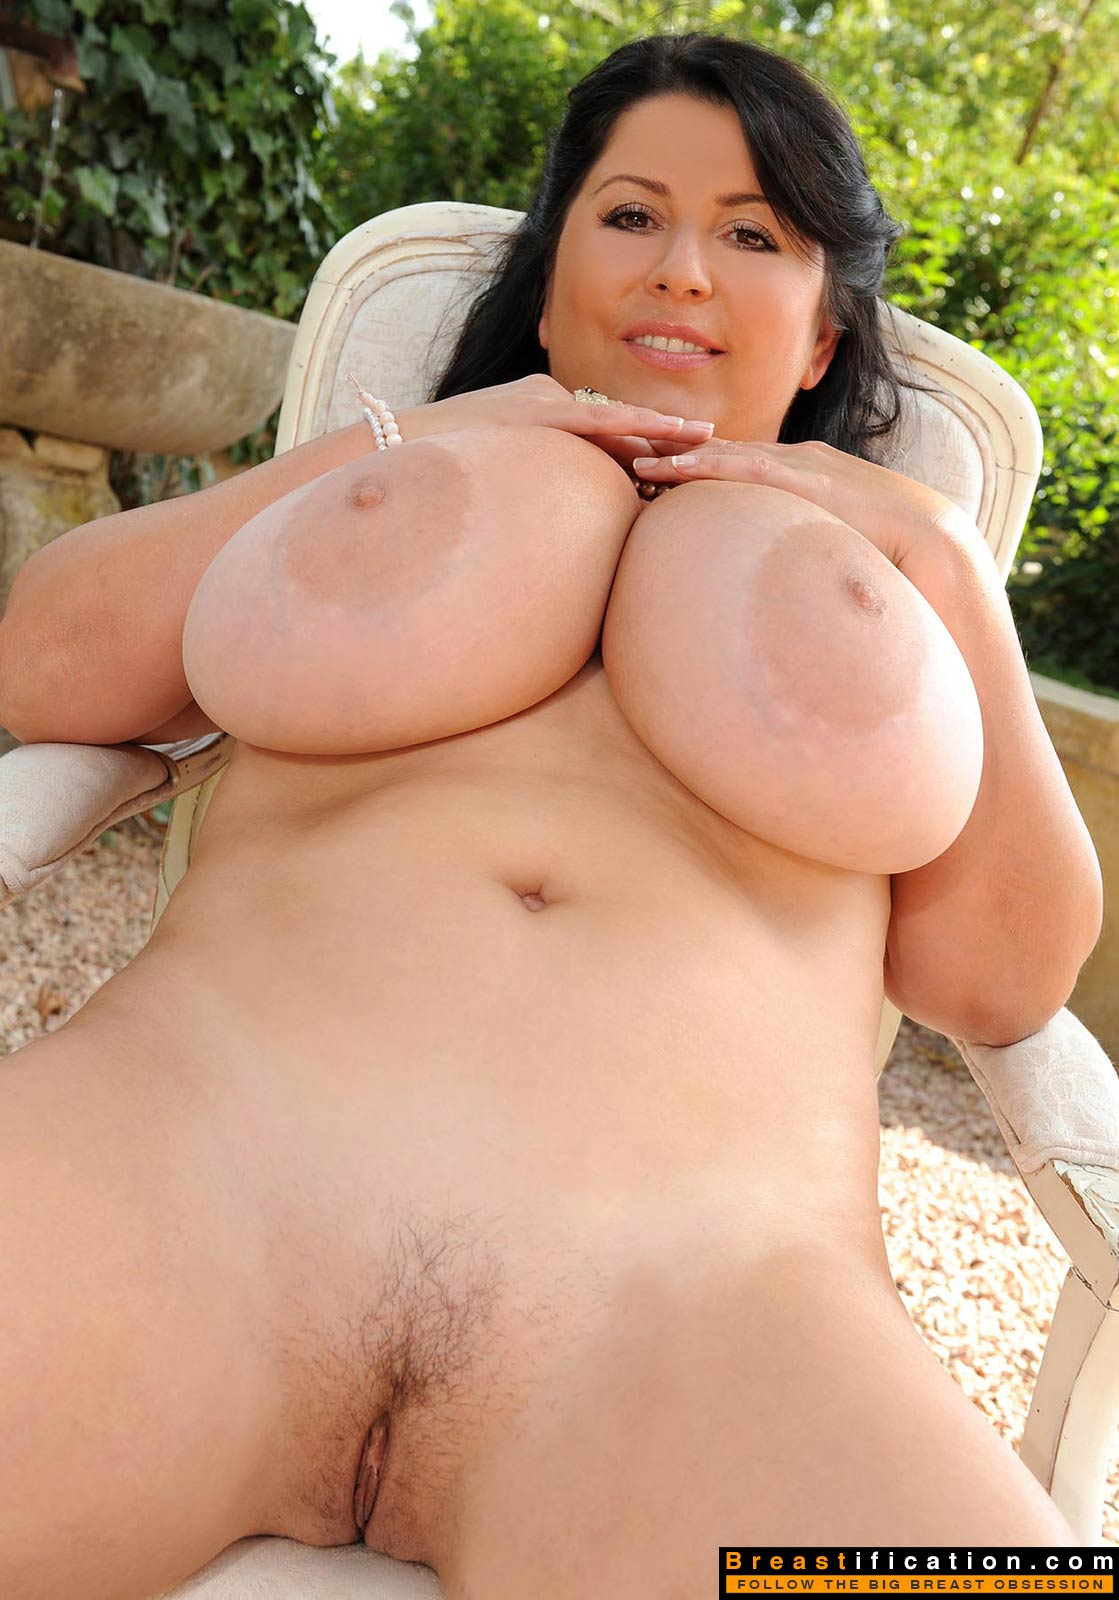 Priya rai shows her big boobs and squirts for a show 5